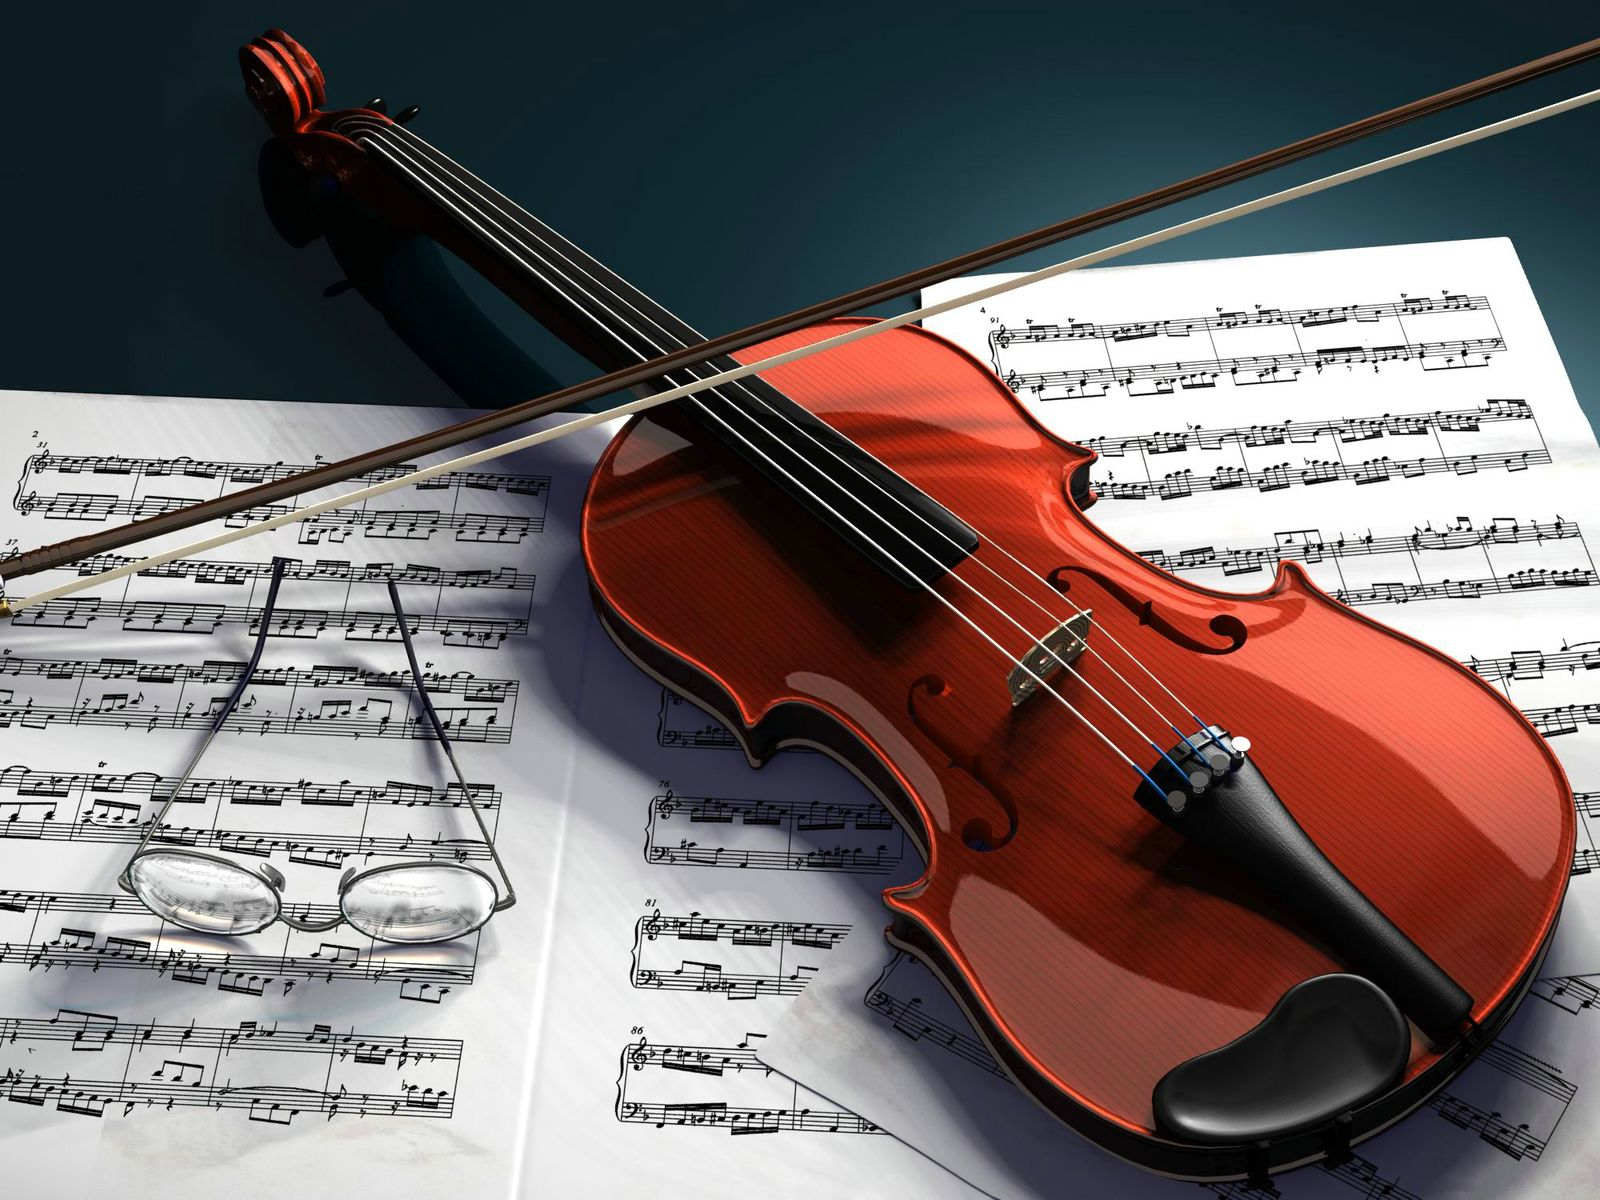 3d Violin Wallpaper 386 1600x1200 Px Pickywallpaperscom